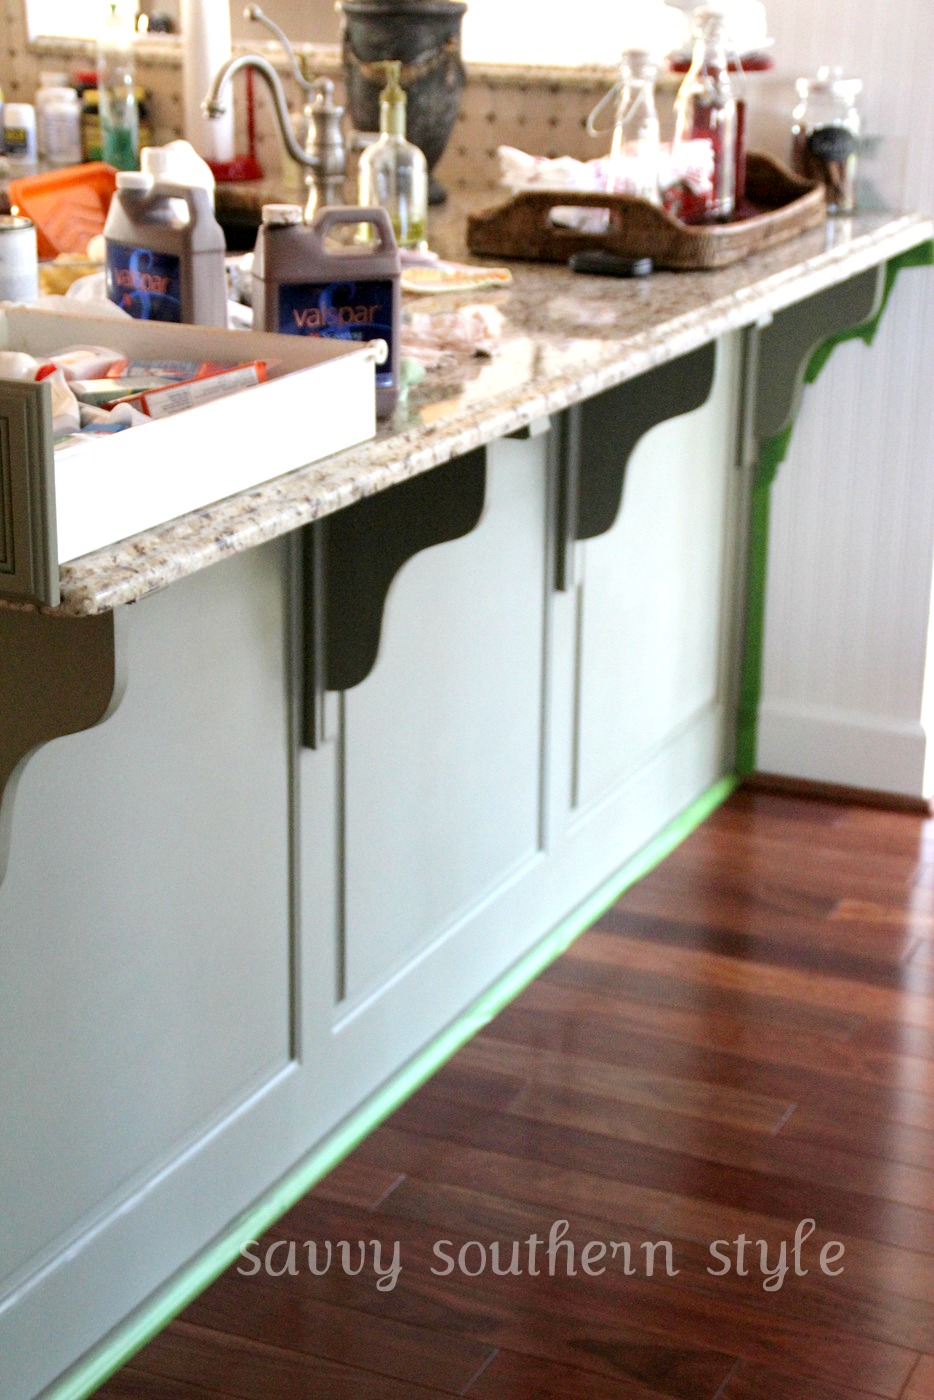 Savvy Southern Style : Kitchen Cabinets Tutorial